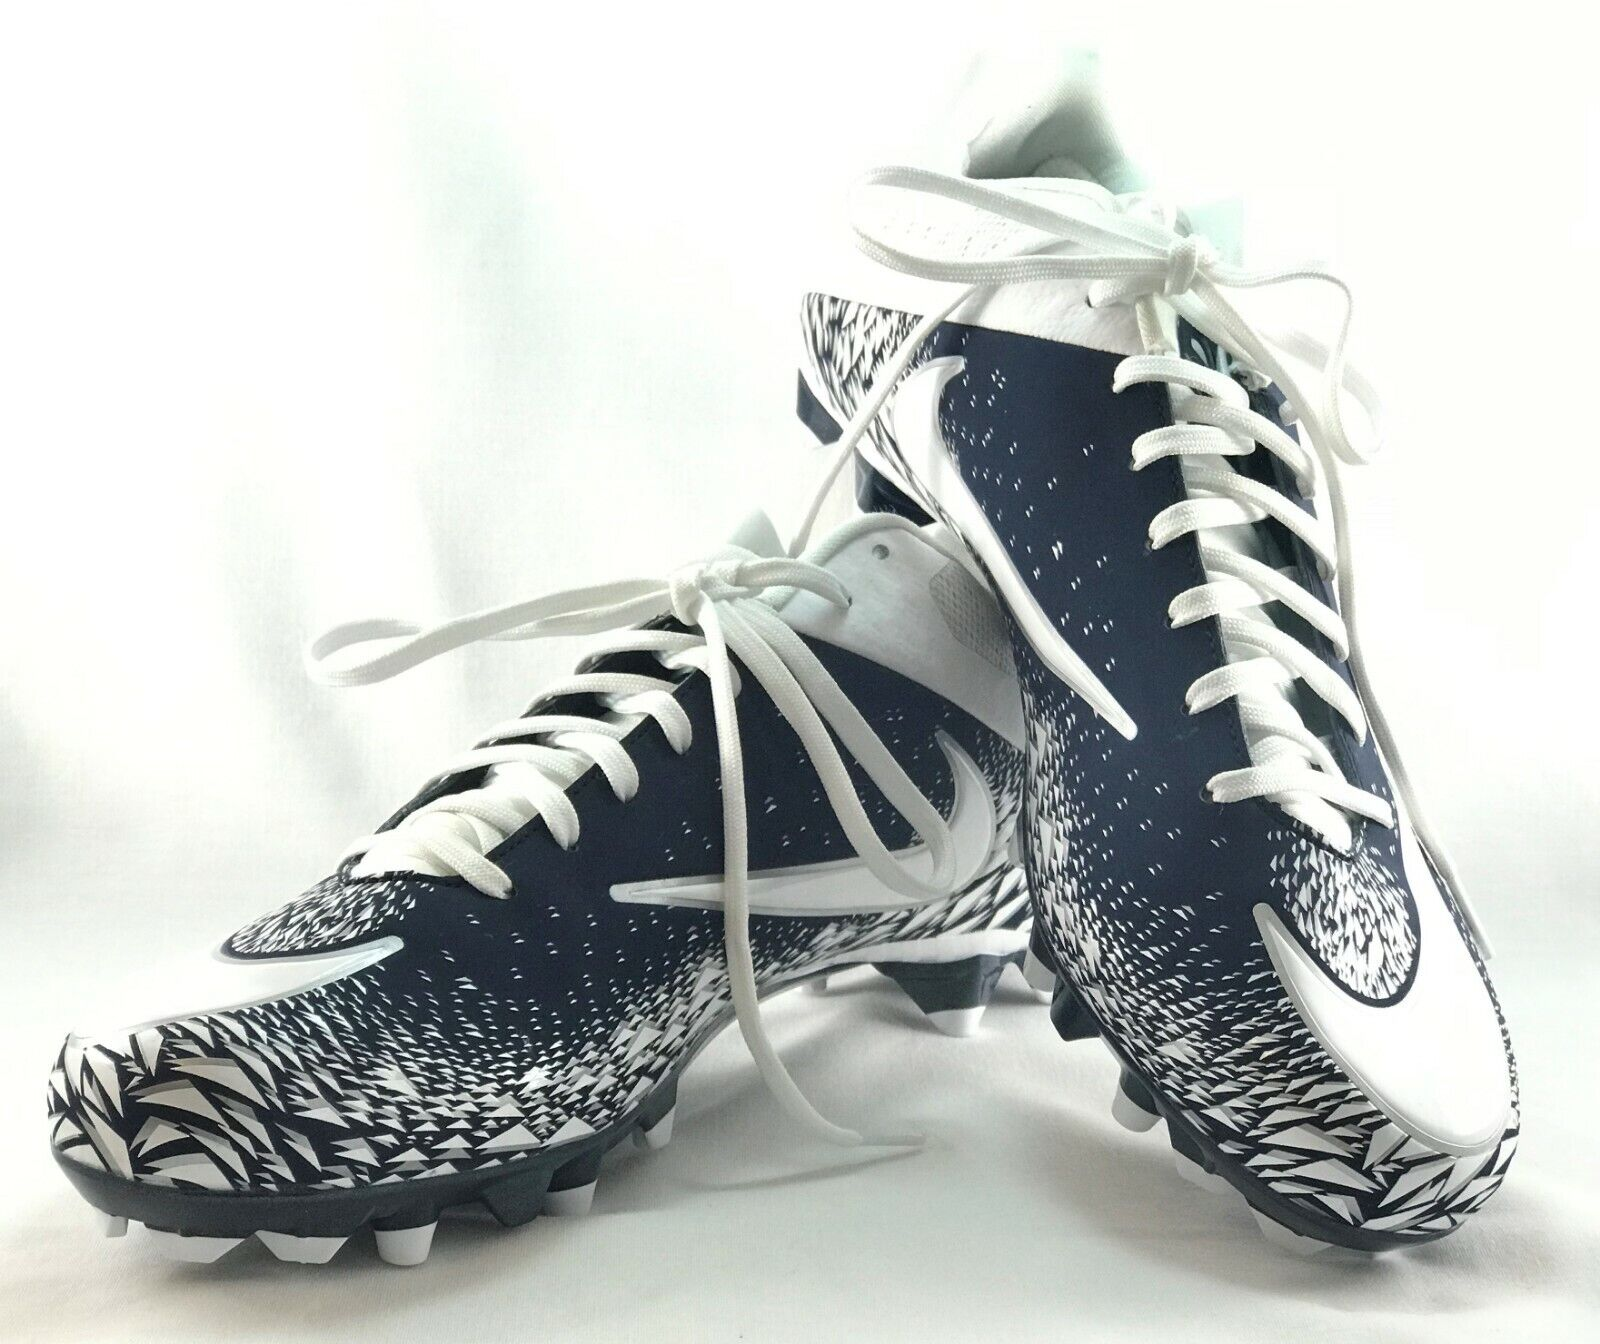 a8d5470ef3 Nike VPR Vapor Speed 2 TD Mens Lacrosse Football Cleats blueeWhite  833380-412 S14